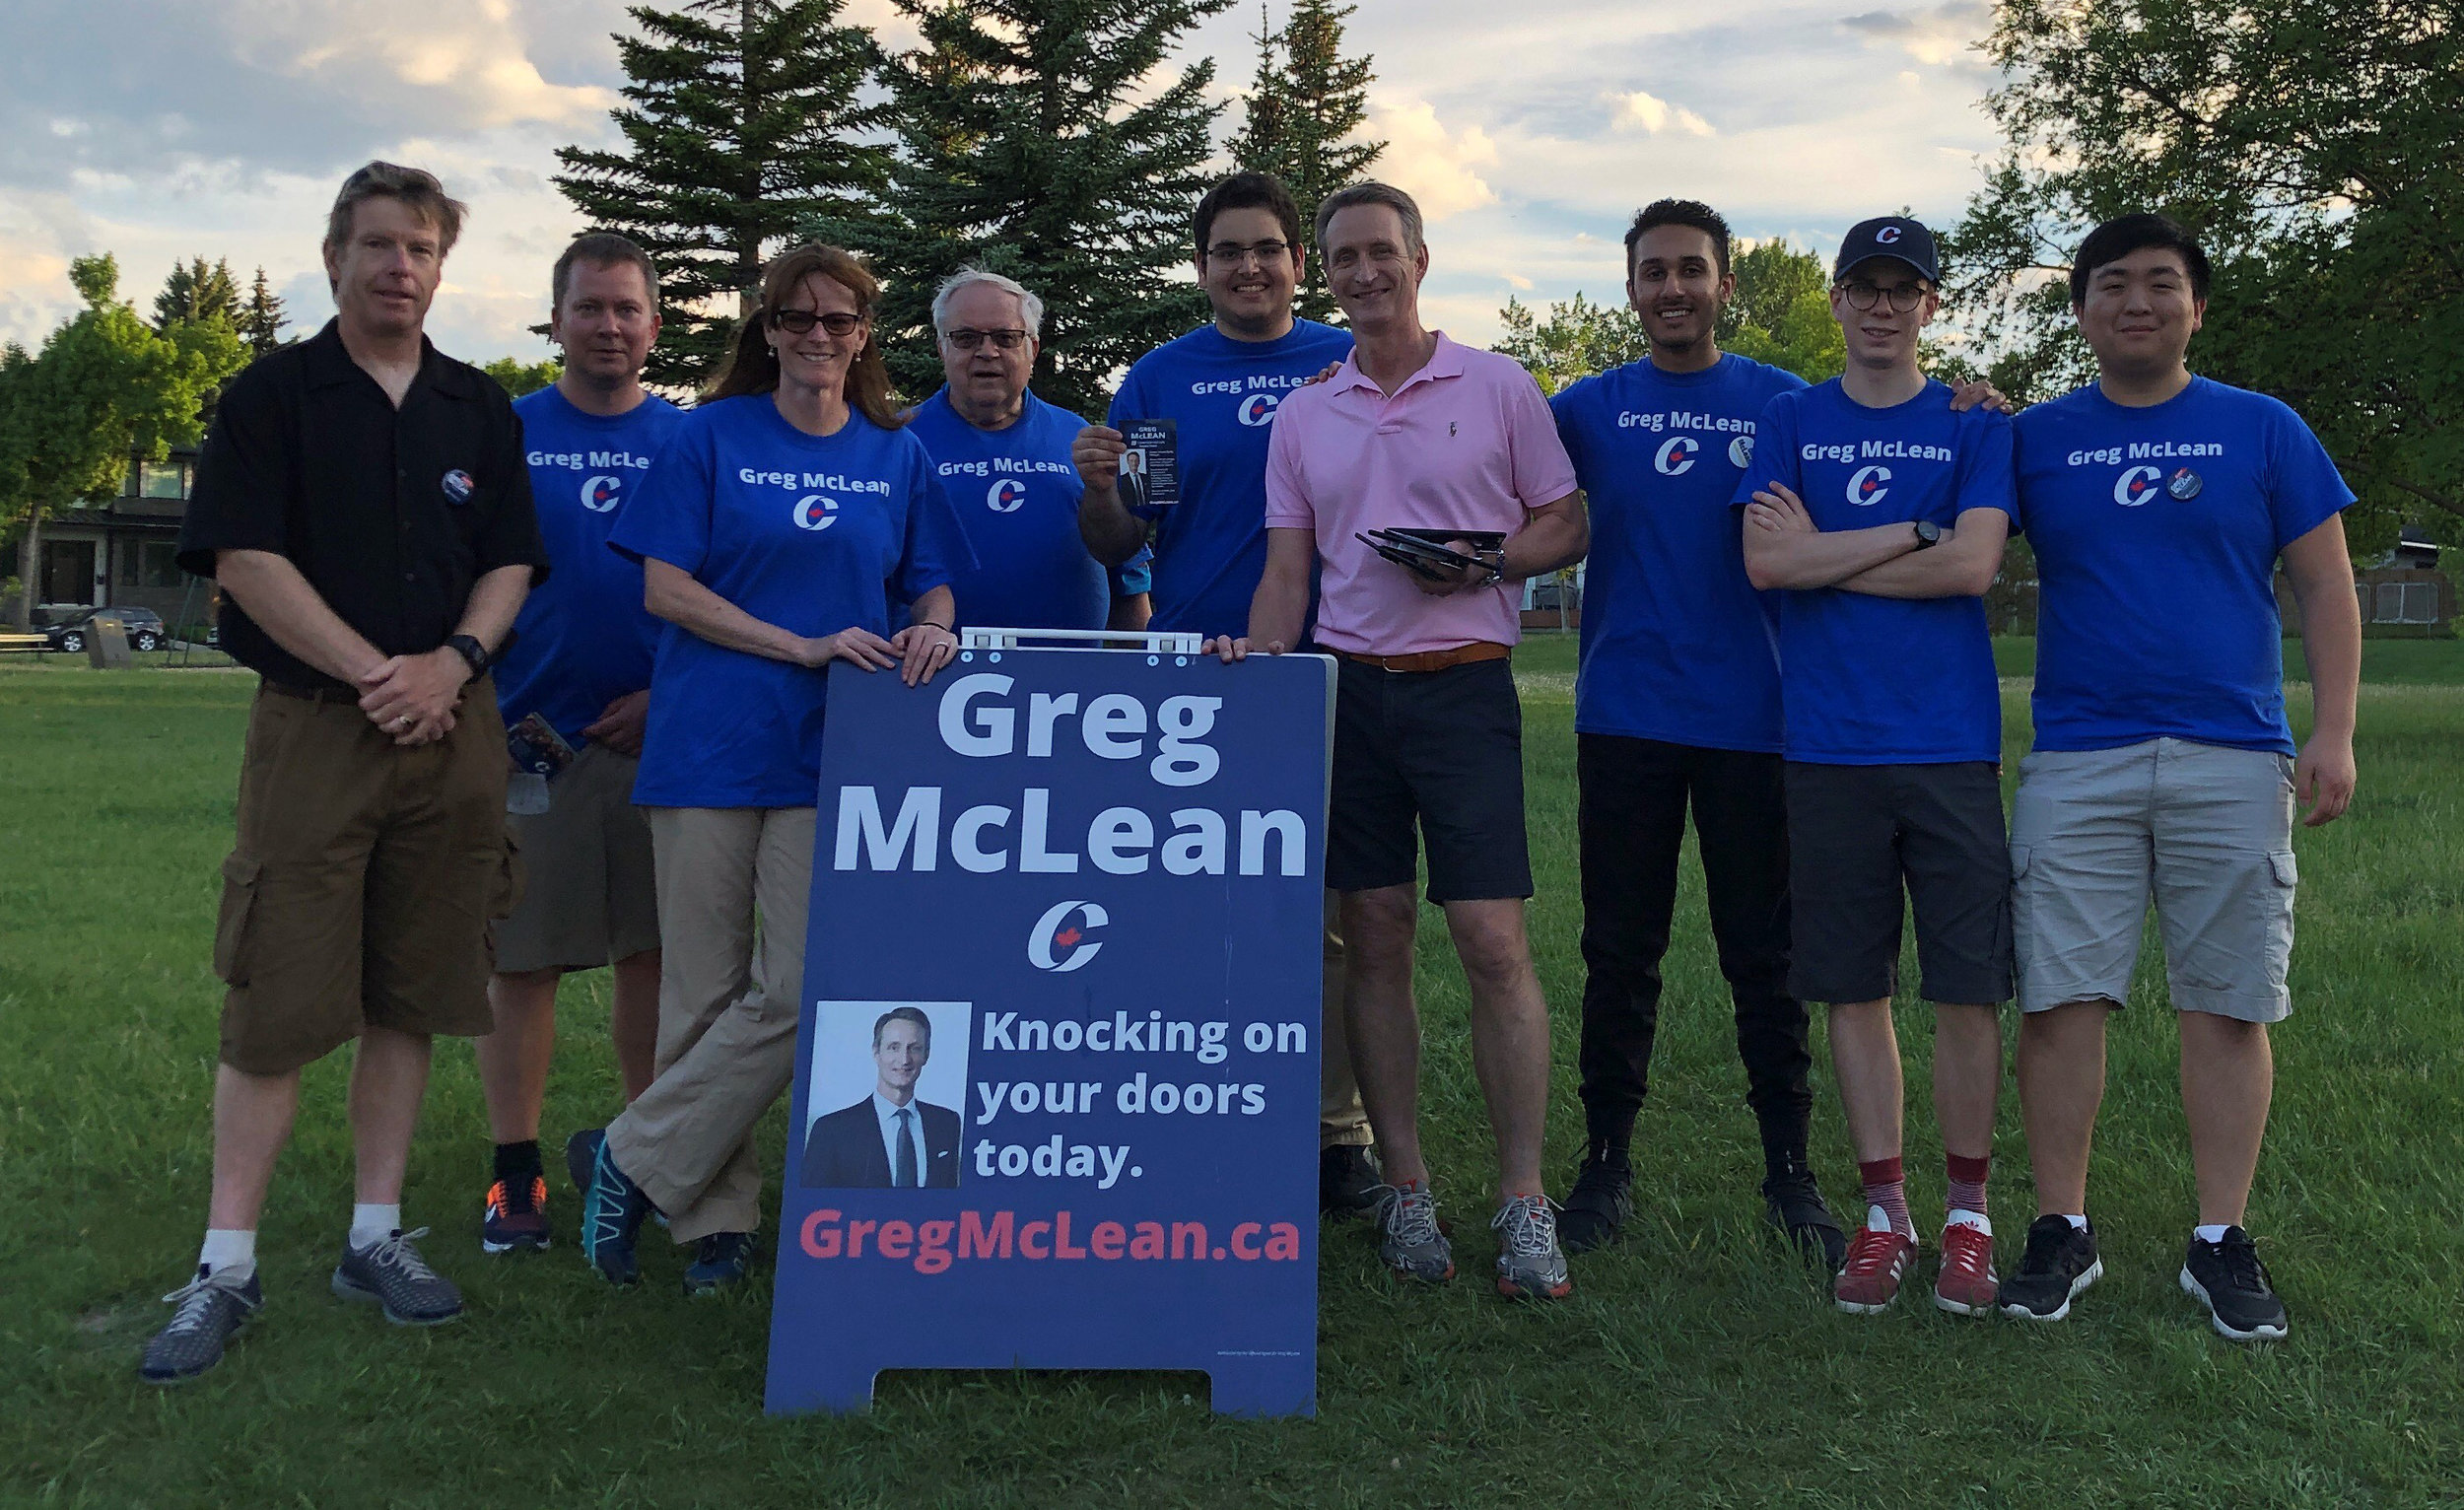 What a night! Two teams at the doors last evening (June 18) as we canvassed in Altadore. More help keeps coming. Everyone is welcome, because we have a huge job to do. Thanks to everyone who volunteers.